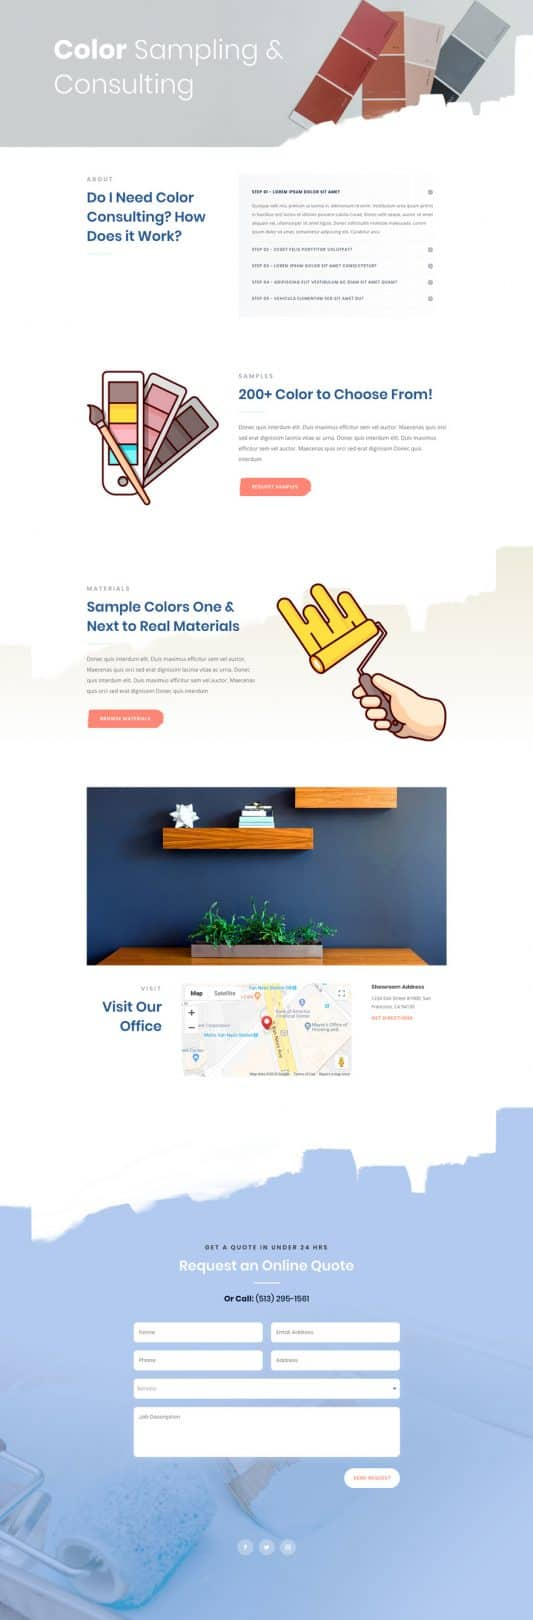 Painting Service Service Page Style 1